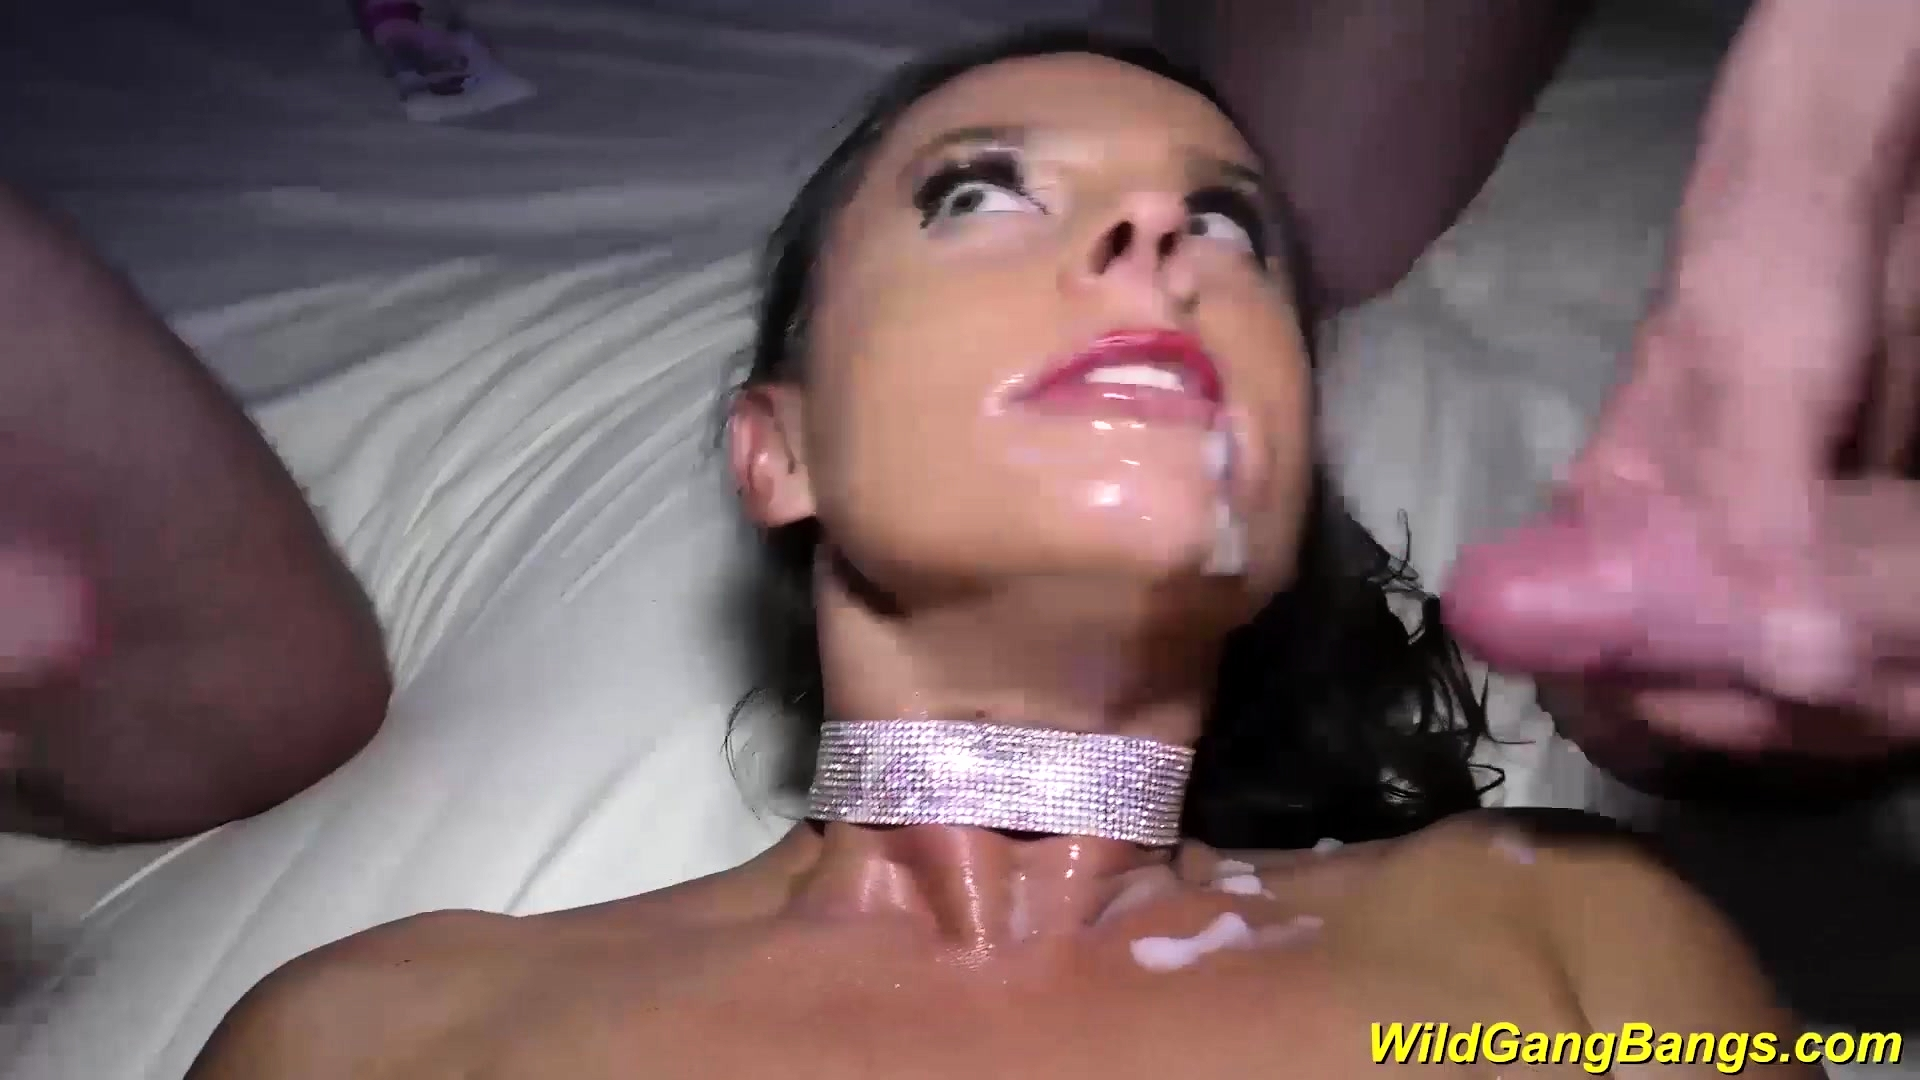 Adults being breast fed